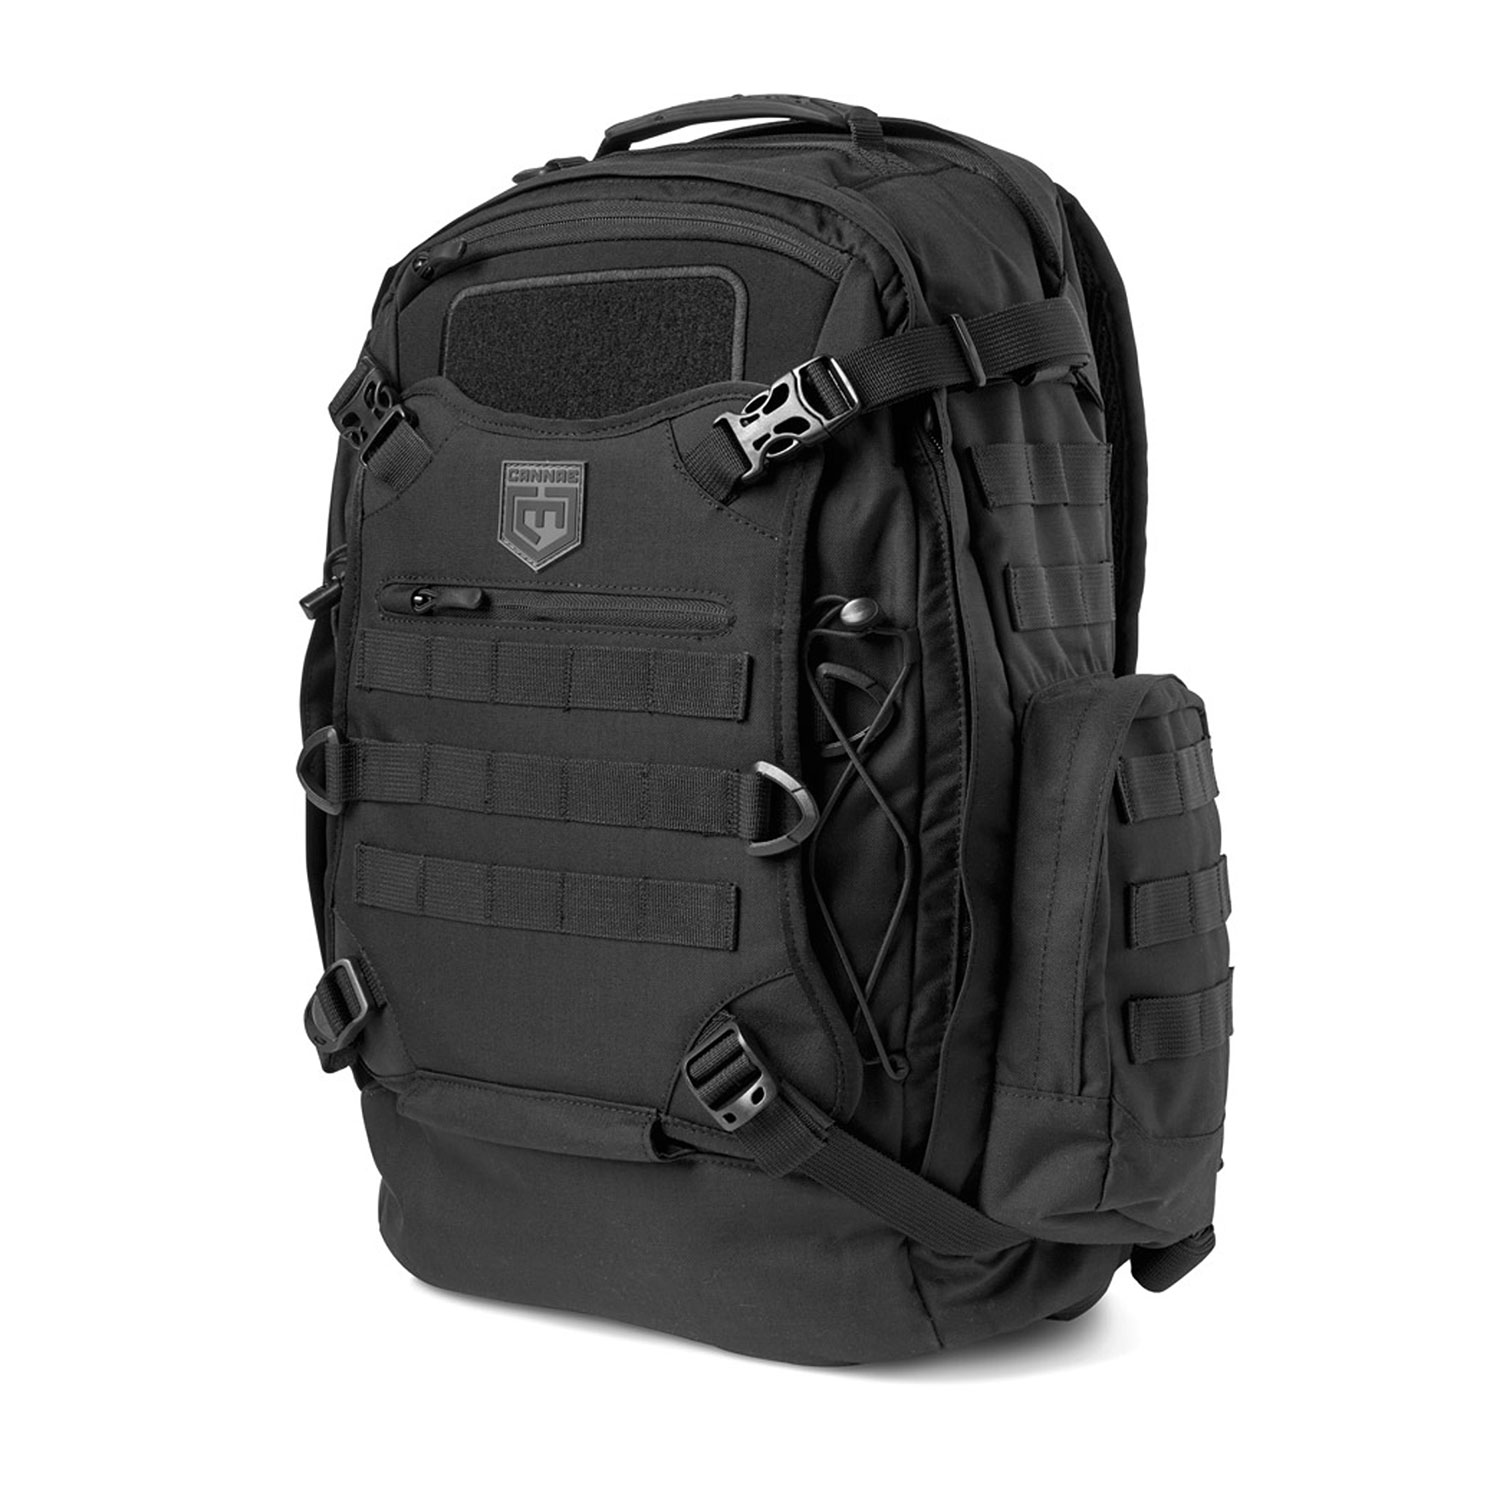 Cannae Phalanx Full Size Duty Pack with Helmet Carry